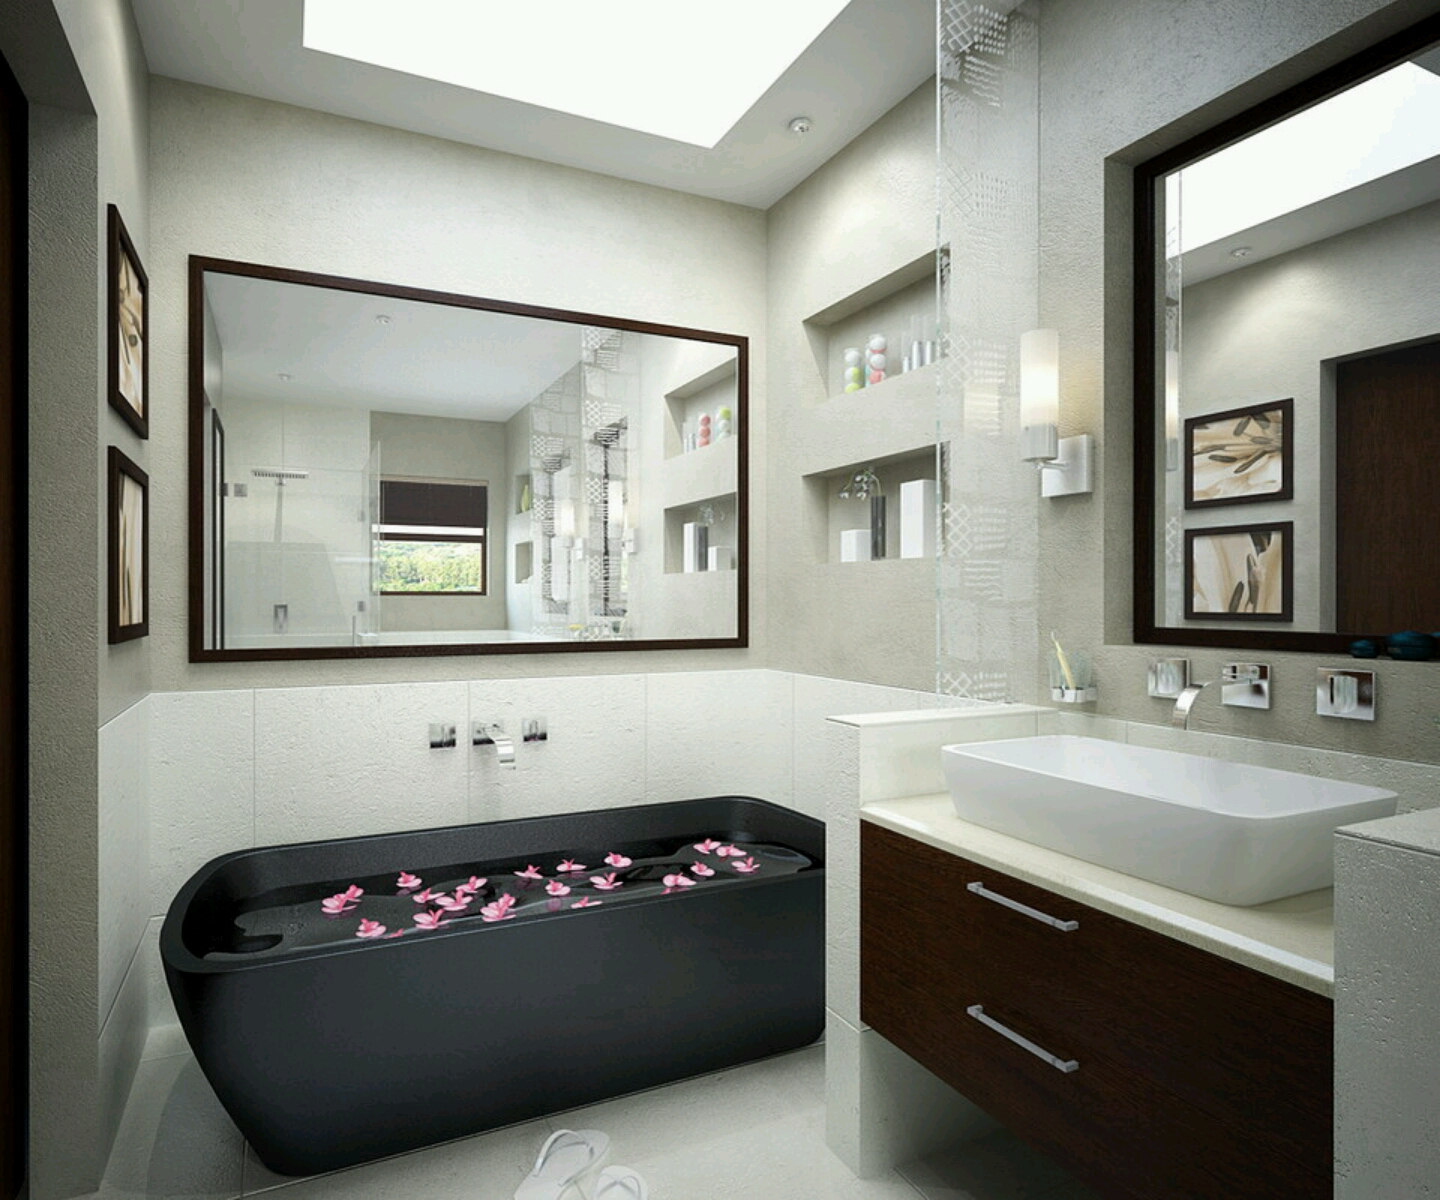 Modern bathrooms cabinets designs furniture gallery - Modern bathroom vanities ideas for contemporary design ...